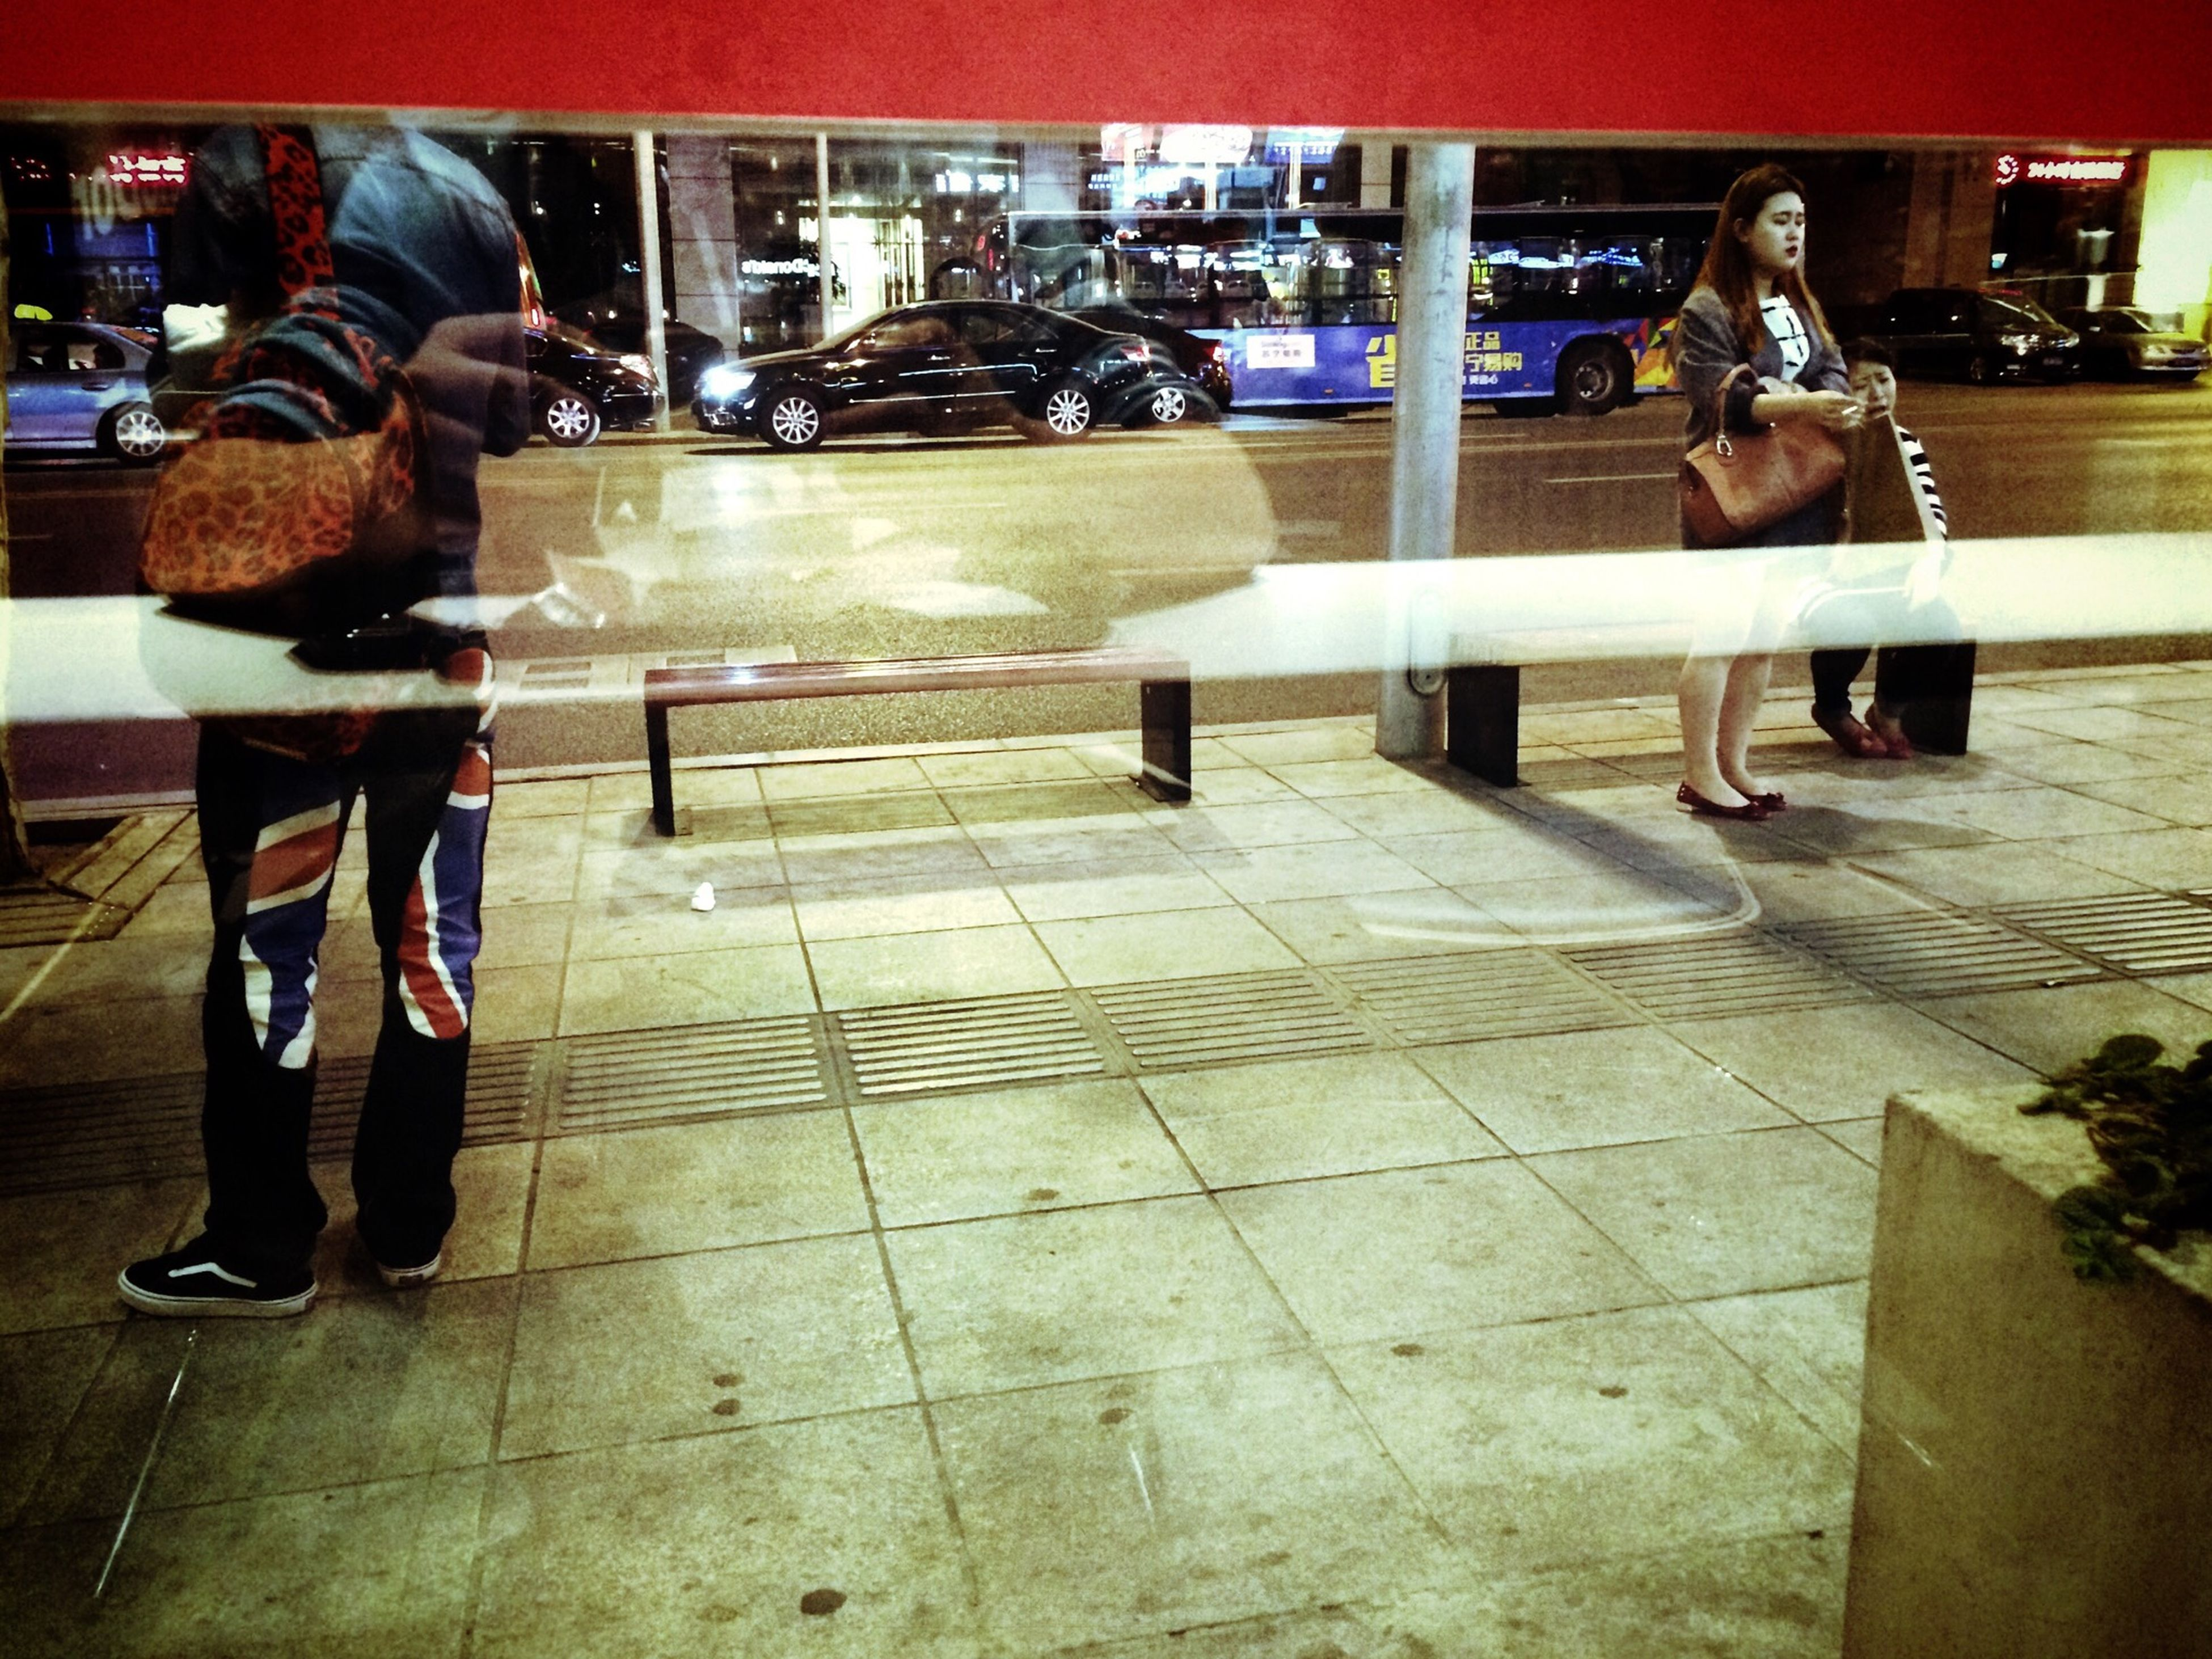 indoors, men, lifestyles, standing, person, casual clothing, sitting, leisure activity, table, full length, restaurant, rear view, incidental people, reflection, low section, public transportation